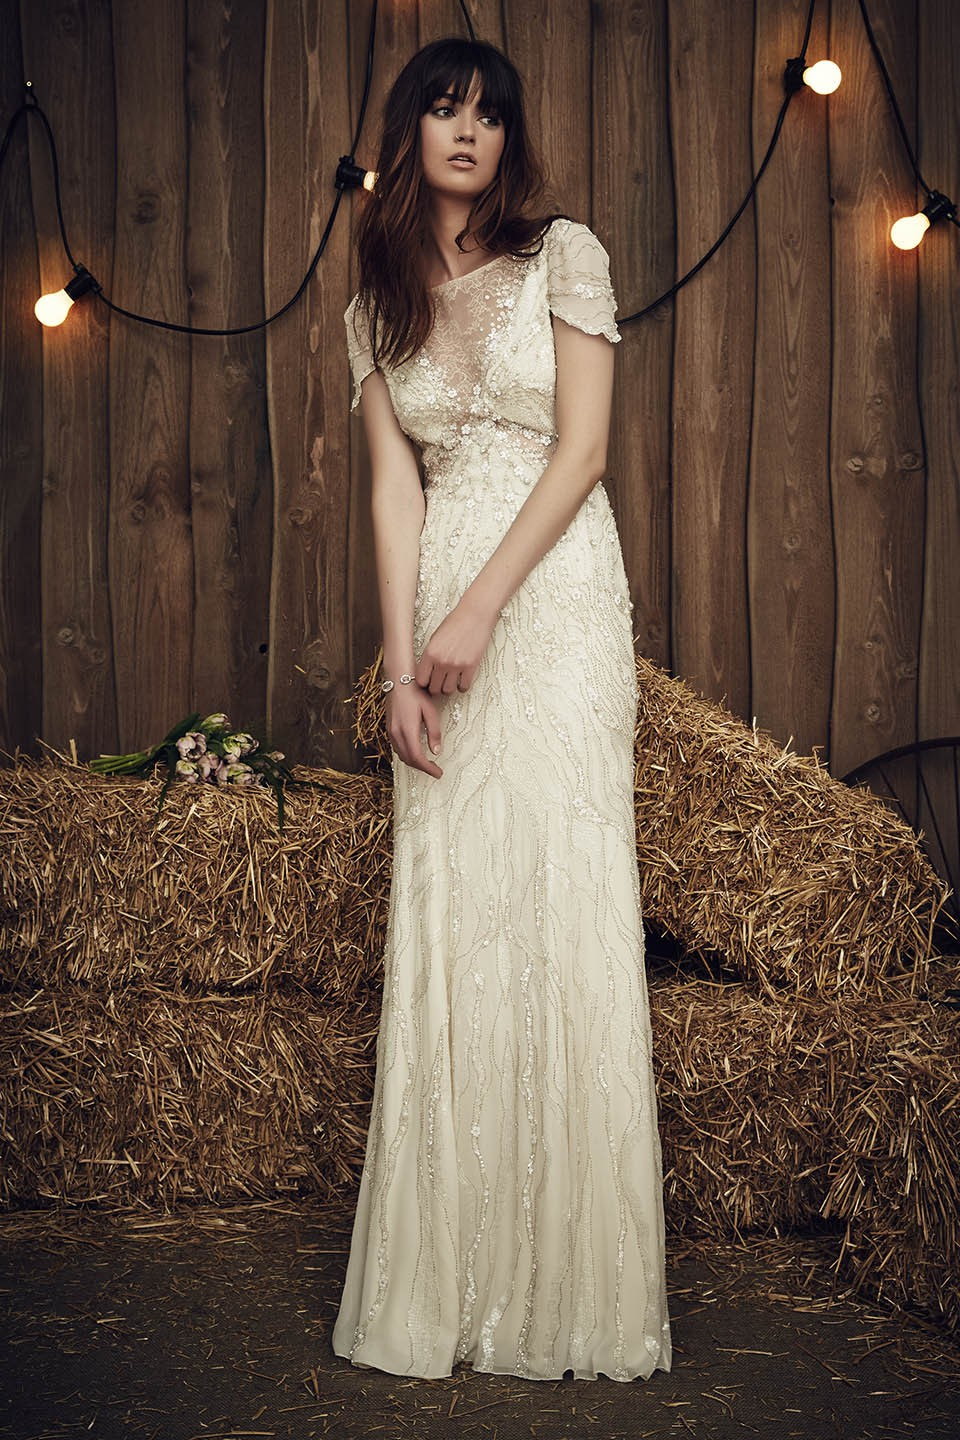 Jenny packham nashville sample wedding dress on sale 50 off for Wedding dresses in nashville